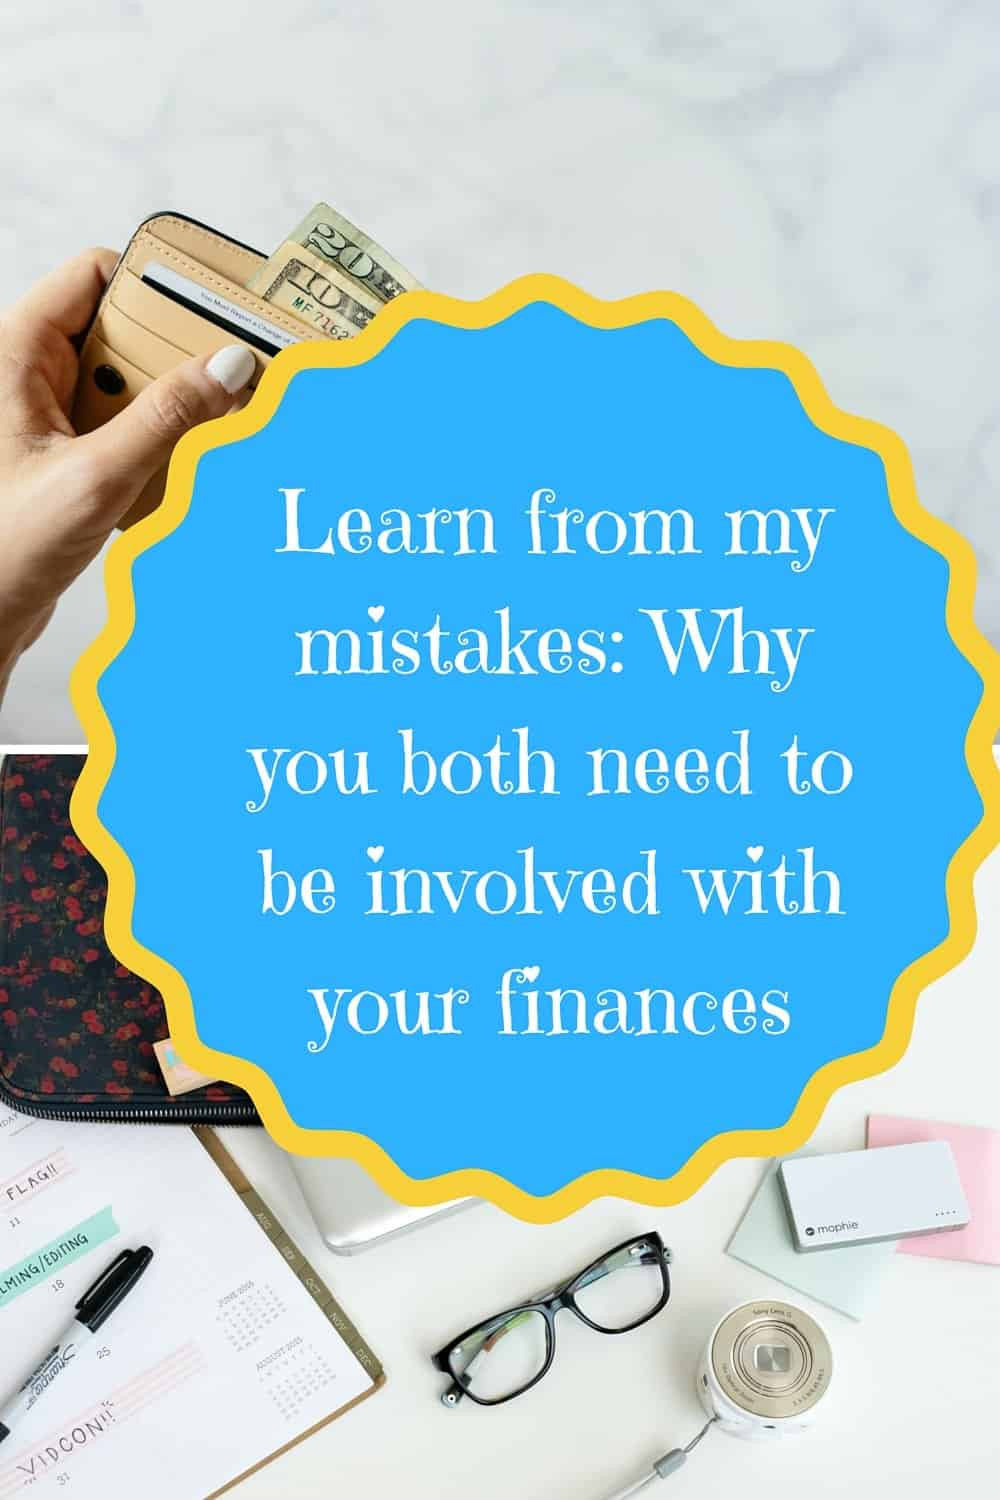 Learn from my mistakes- Why you both need to be involved with your finances